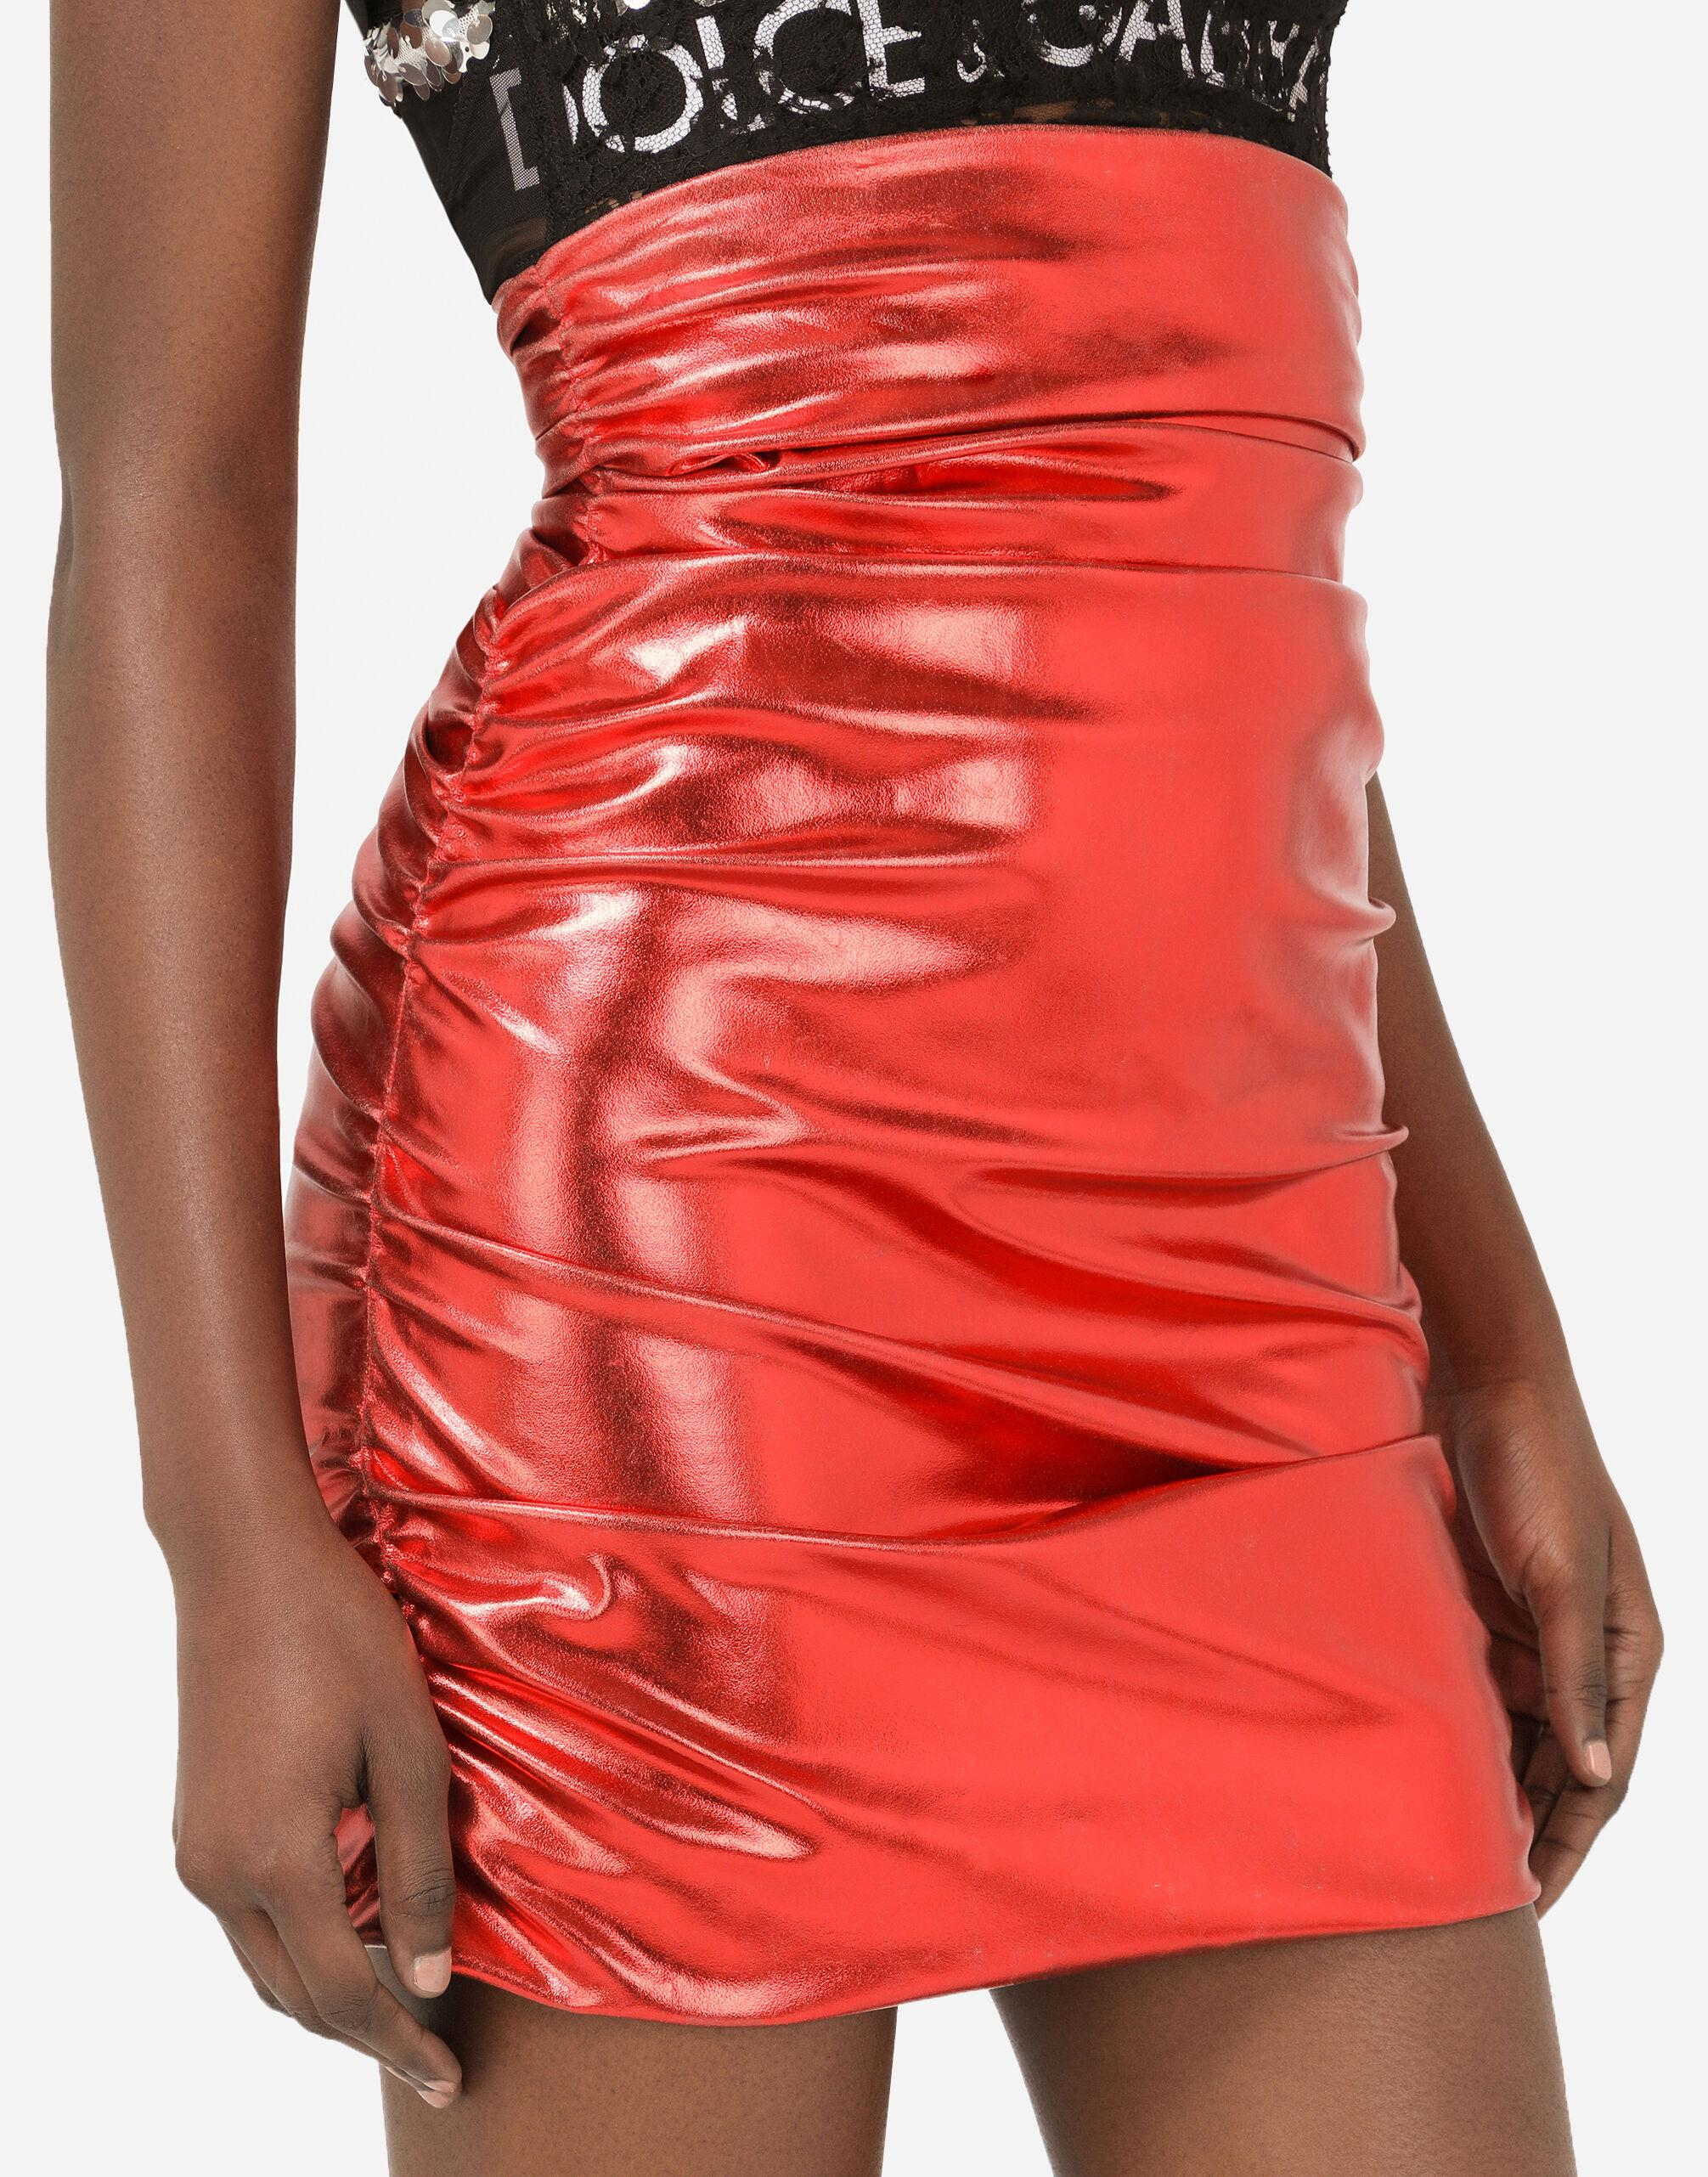 Foiled fabric miniskirt with draping 2